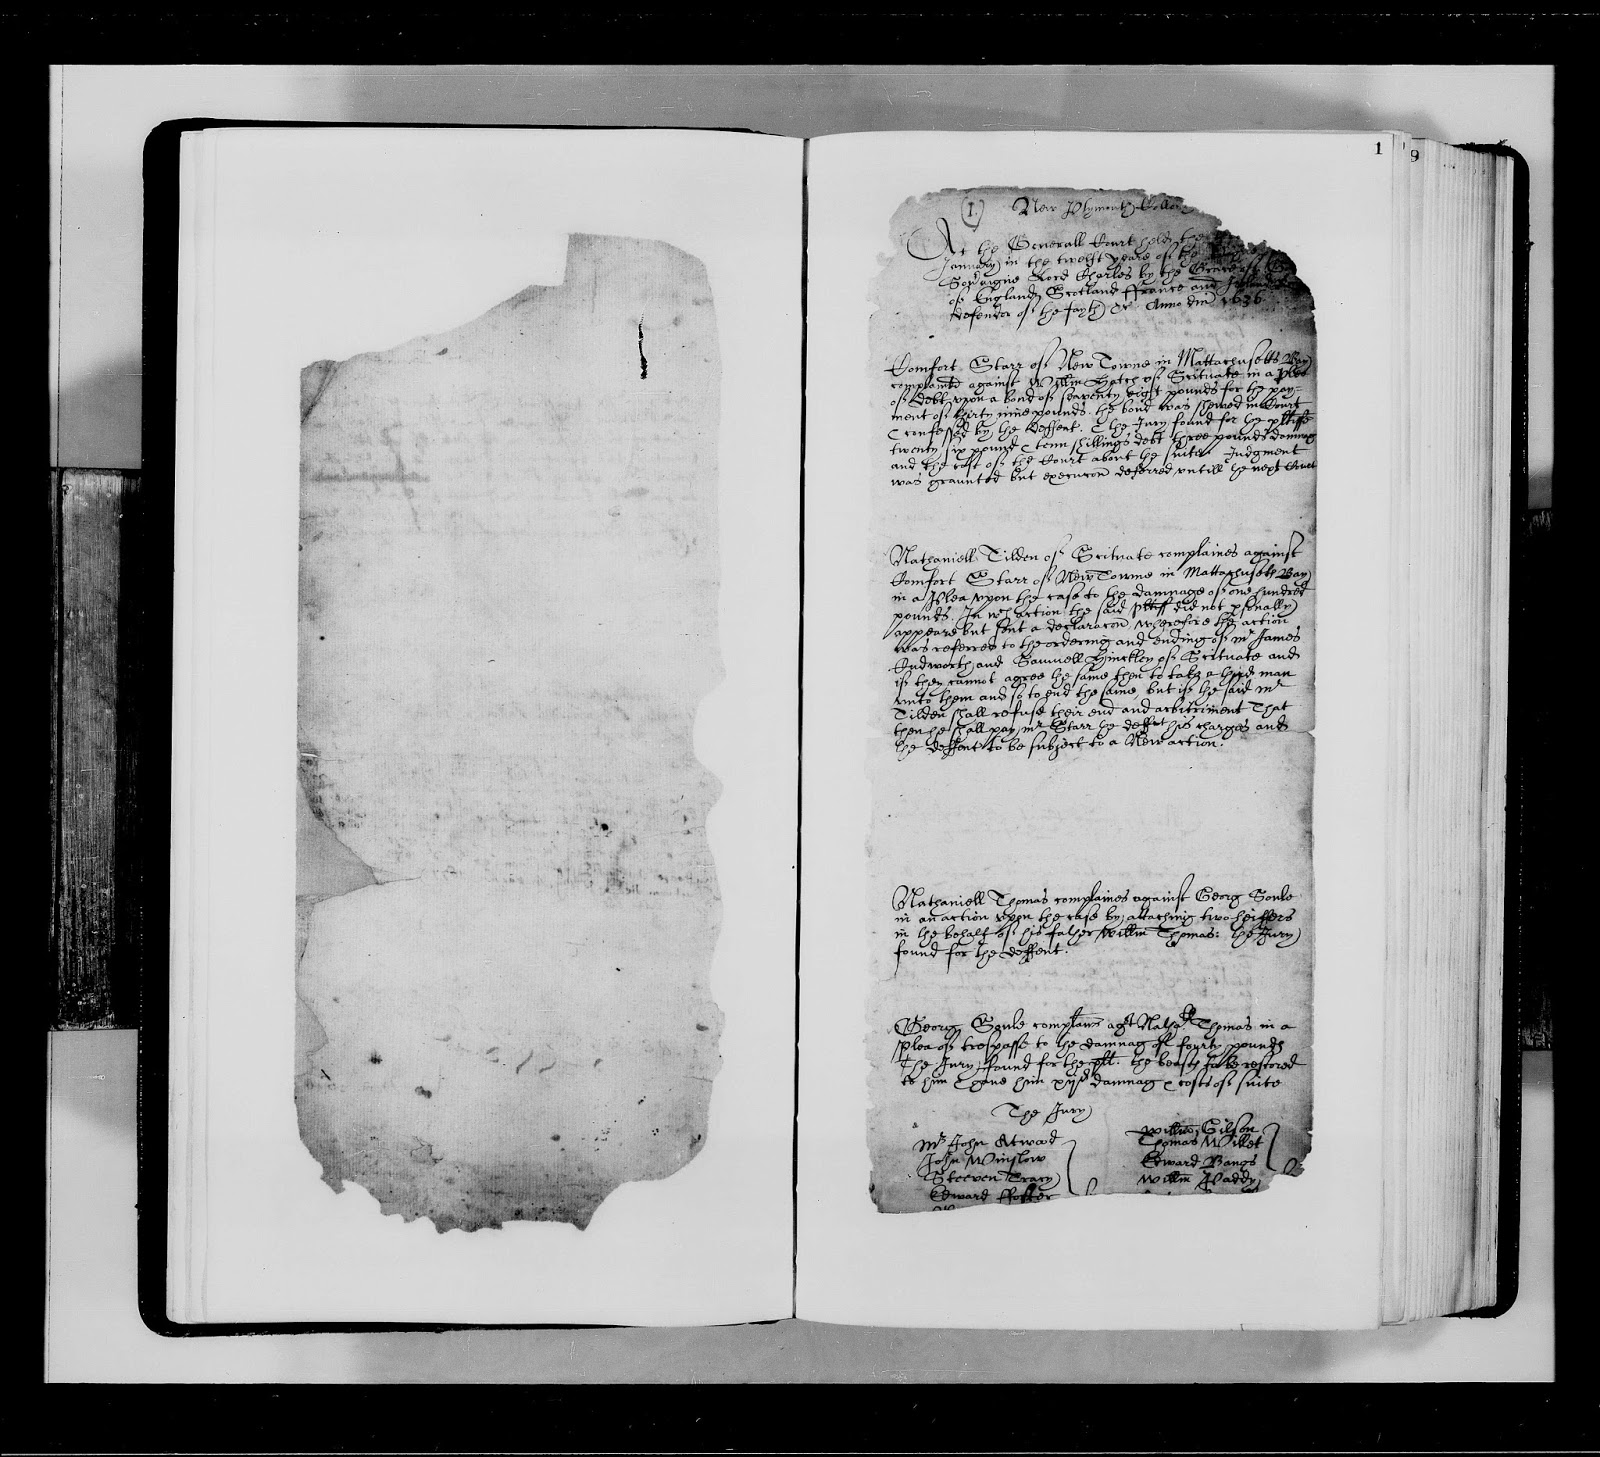 Baltimore county maryland genealogy learn familysearch org - On Familysearch Org The Images Are Further Divided By Town Date And Topic Here Is An Example Of An Early Town Record From Plymouth Colony In 1636